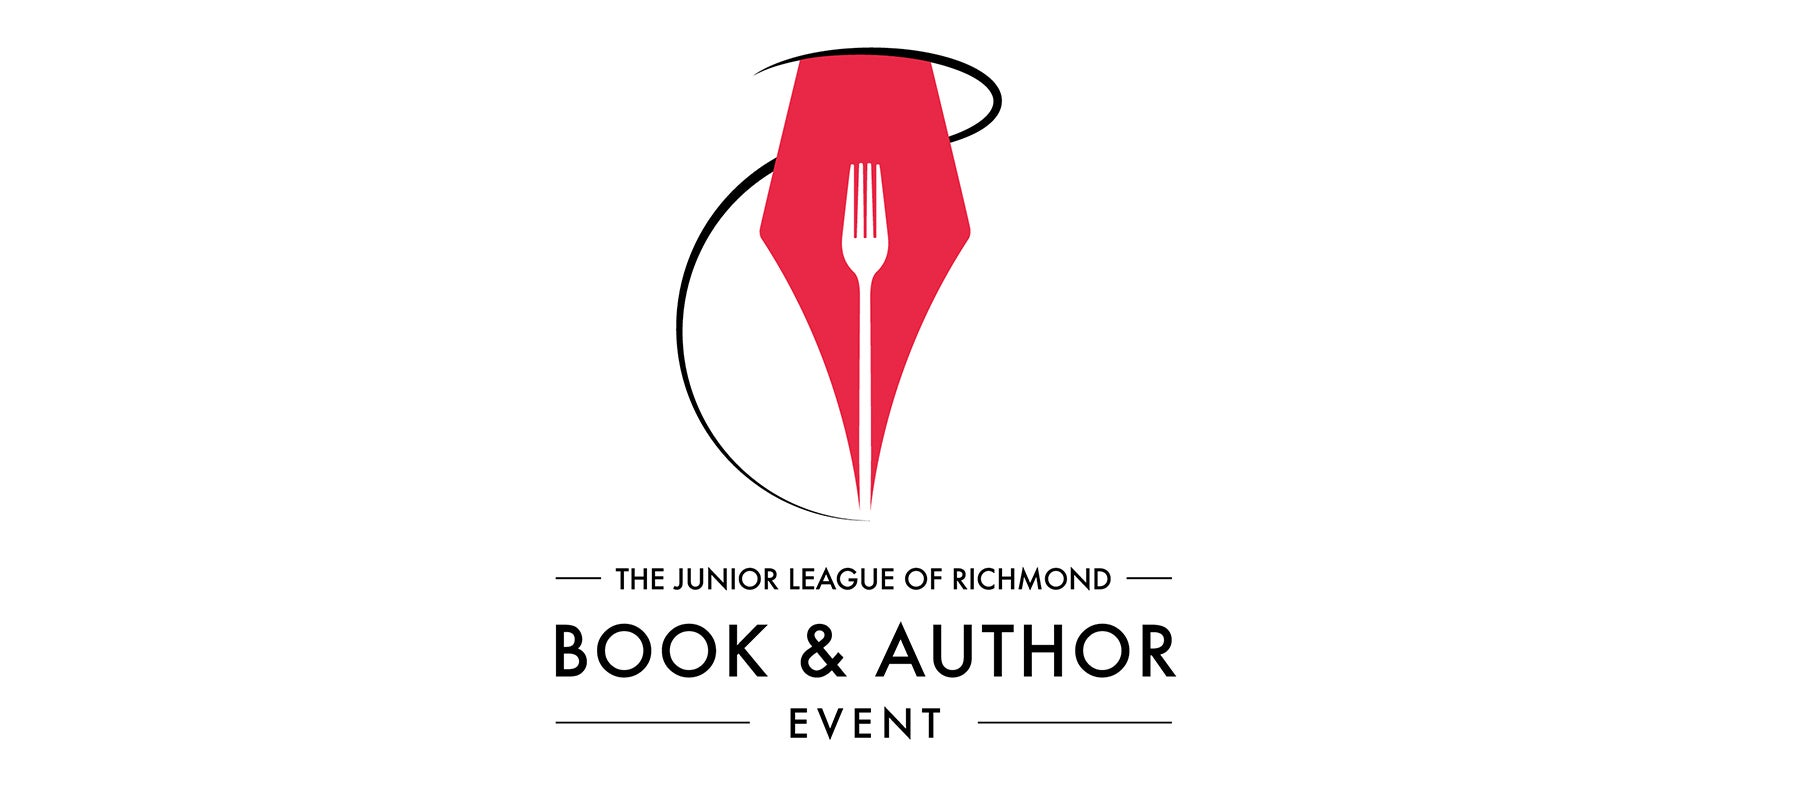 CANCELLED The Junior League of Richmond presents the 75th Annual Book & Author Event